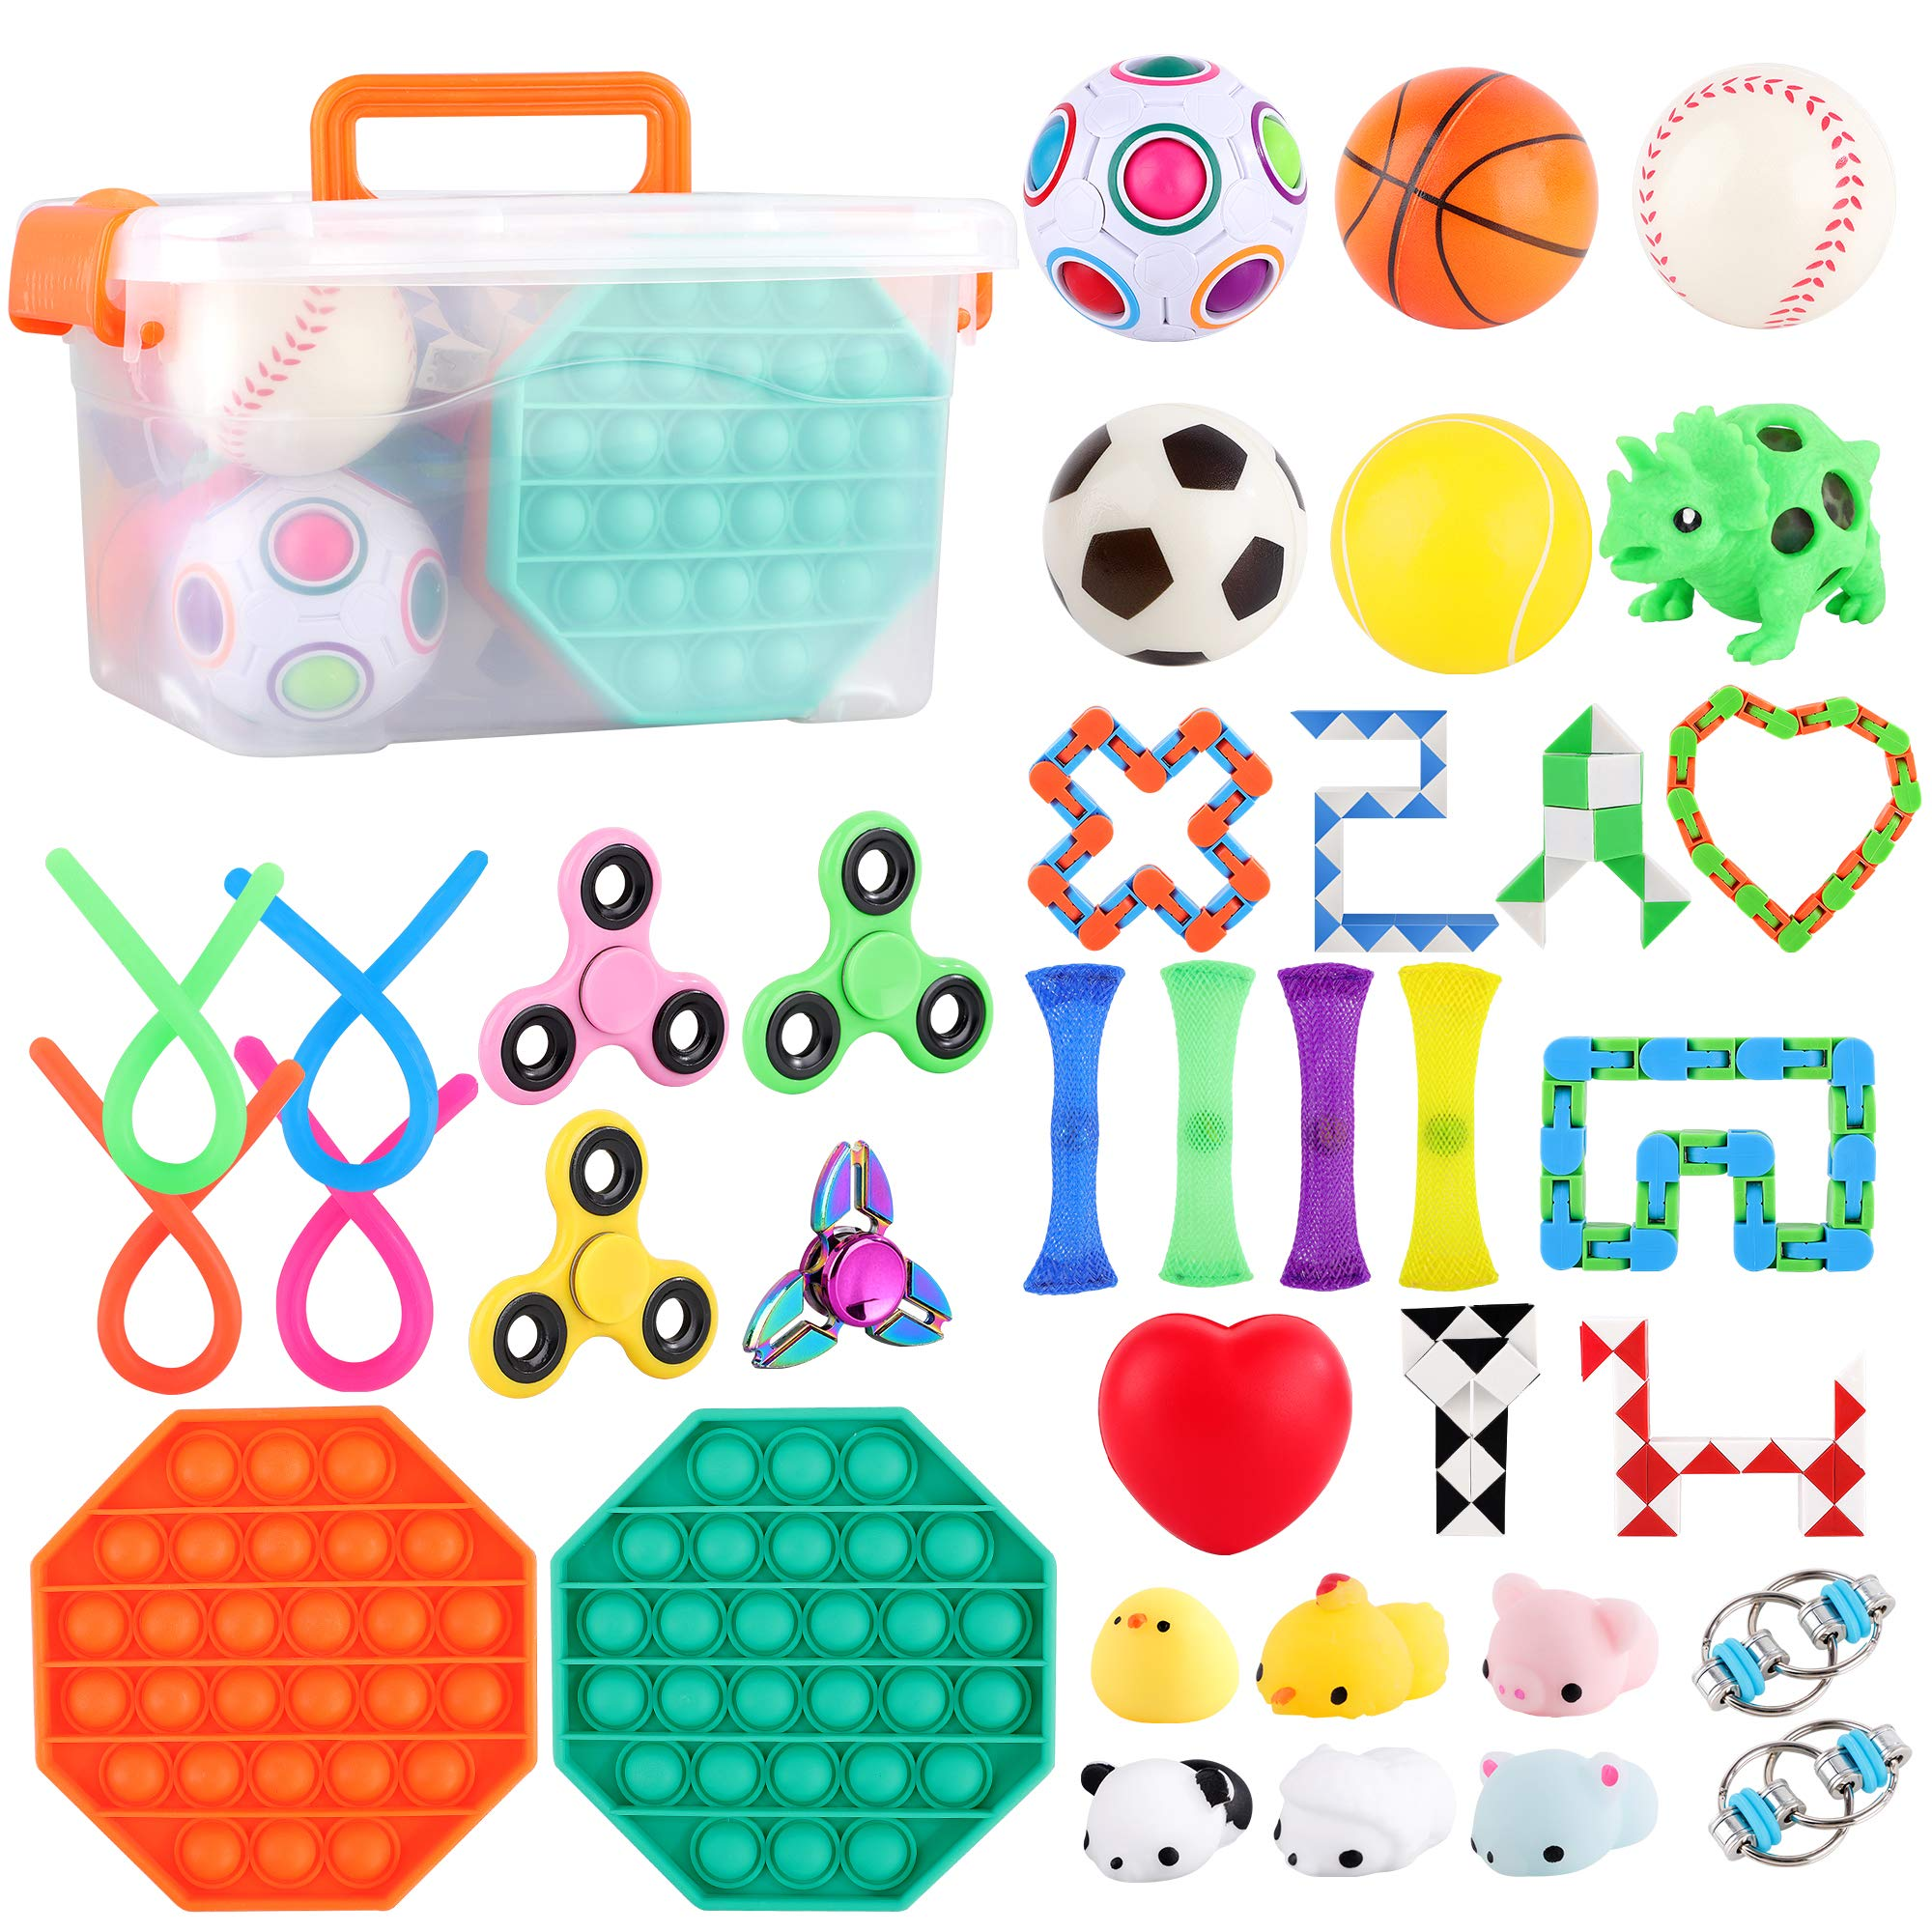 FiGoal 36 PCS Stress Relief Set Sensory Fidget Toys Set, Hand Toys for Adults Kids ADHD ADD Anxiety Autism, Birthday Party Favors,Classroom, Goodie Bag Fillers, Easter Egg Hunting and Gift Exchange